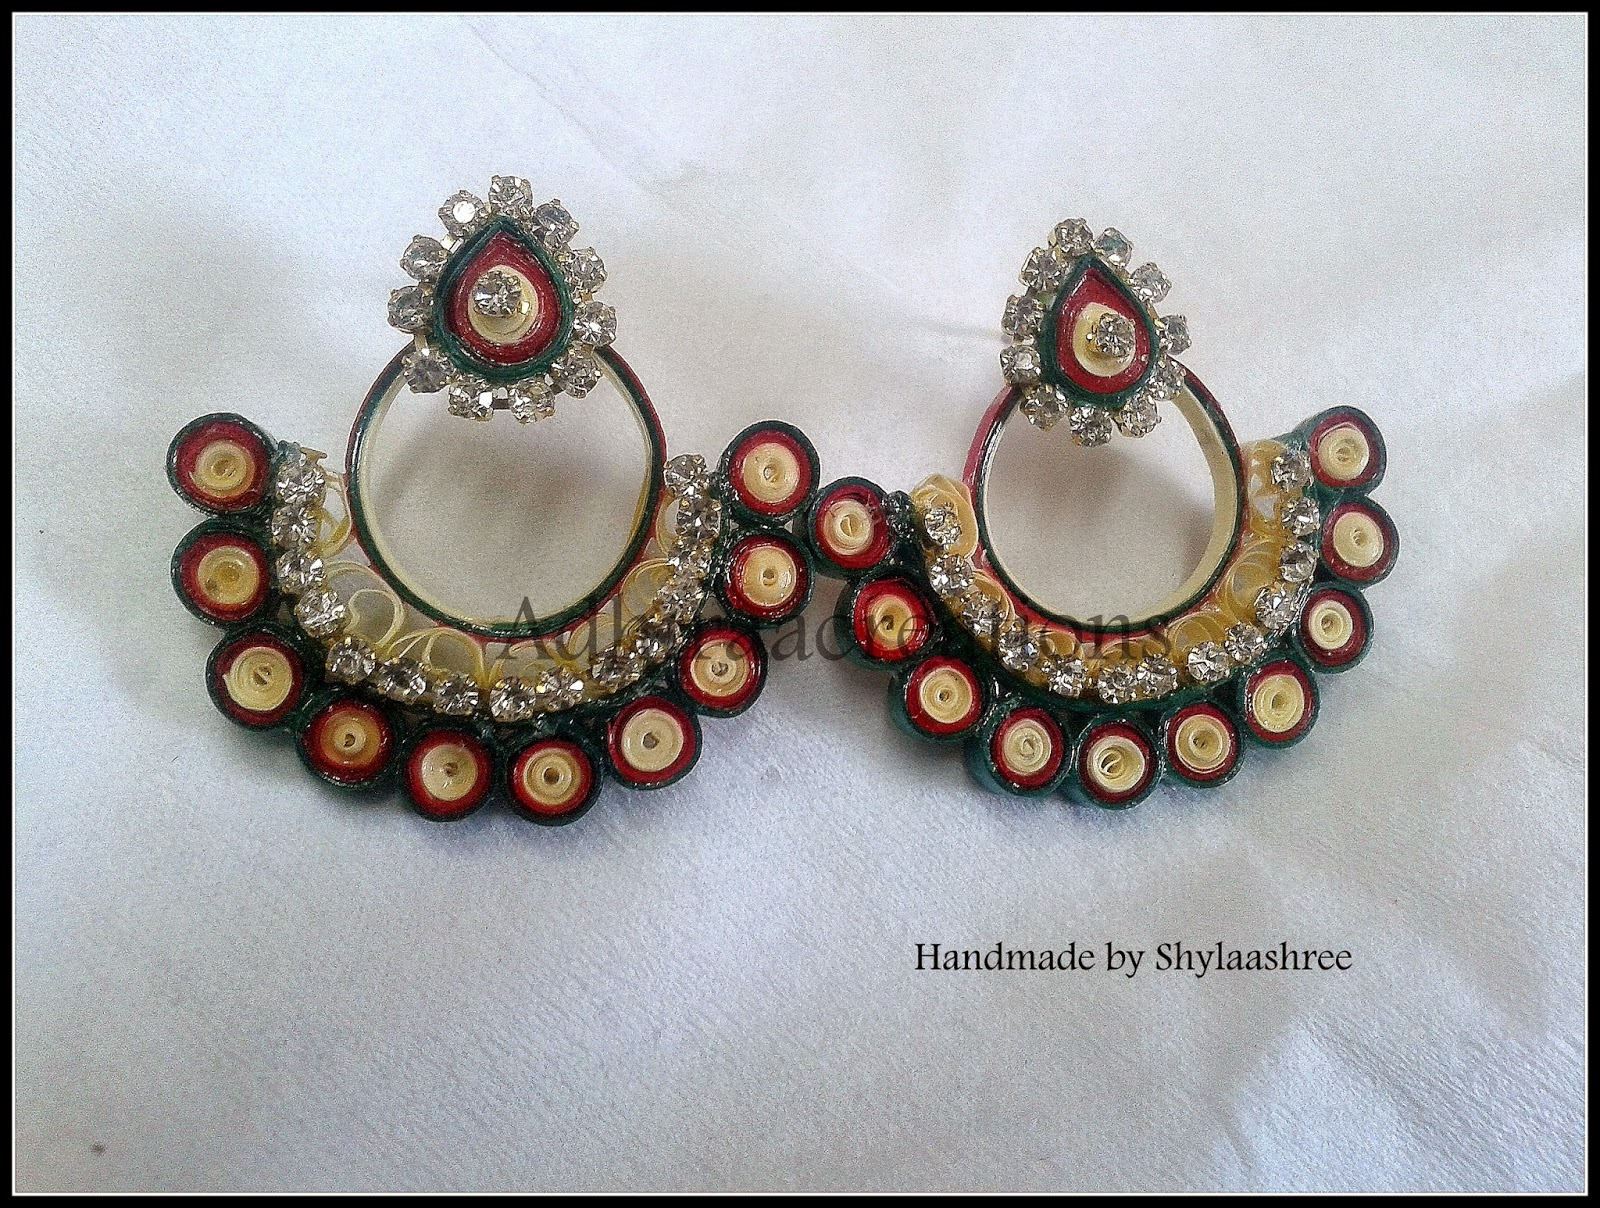 Quilling Earrings Designs Images : Adhiraacreations: Quilling Earring Designs